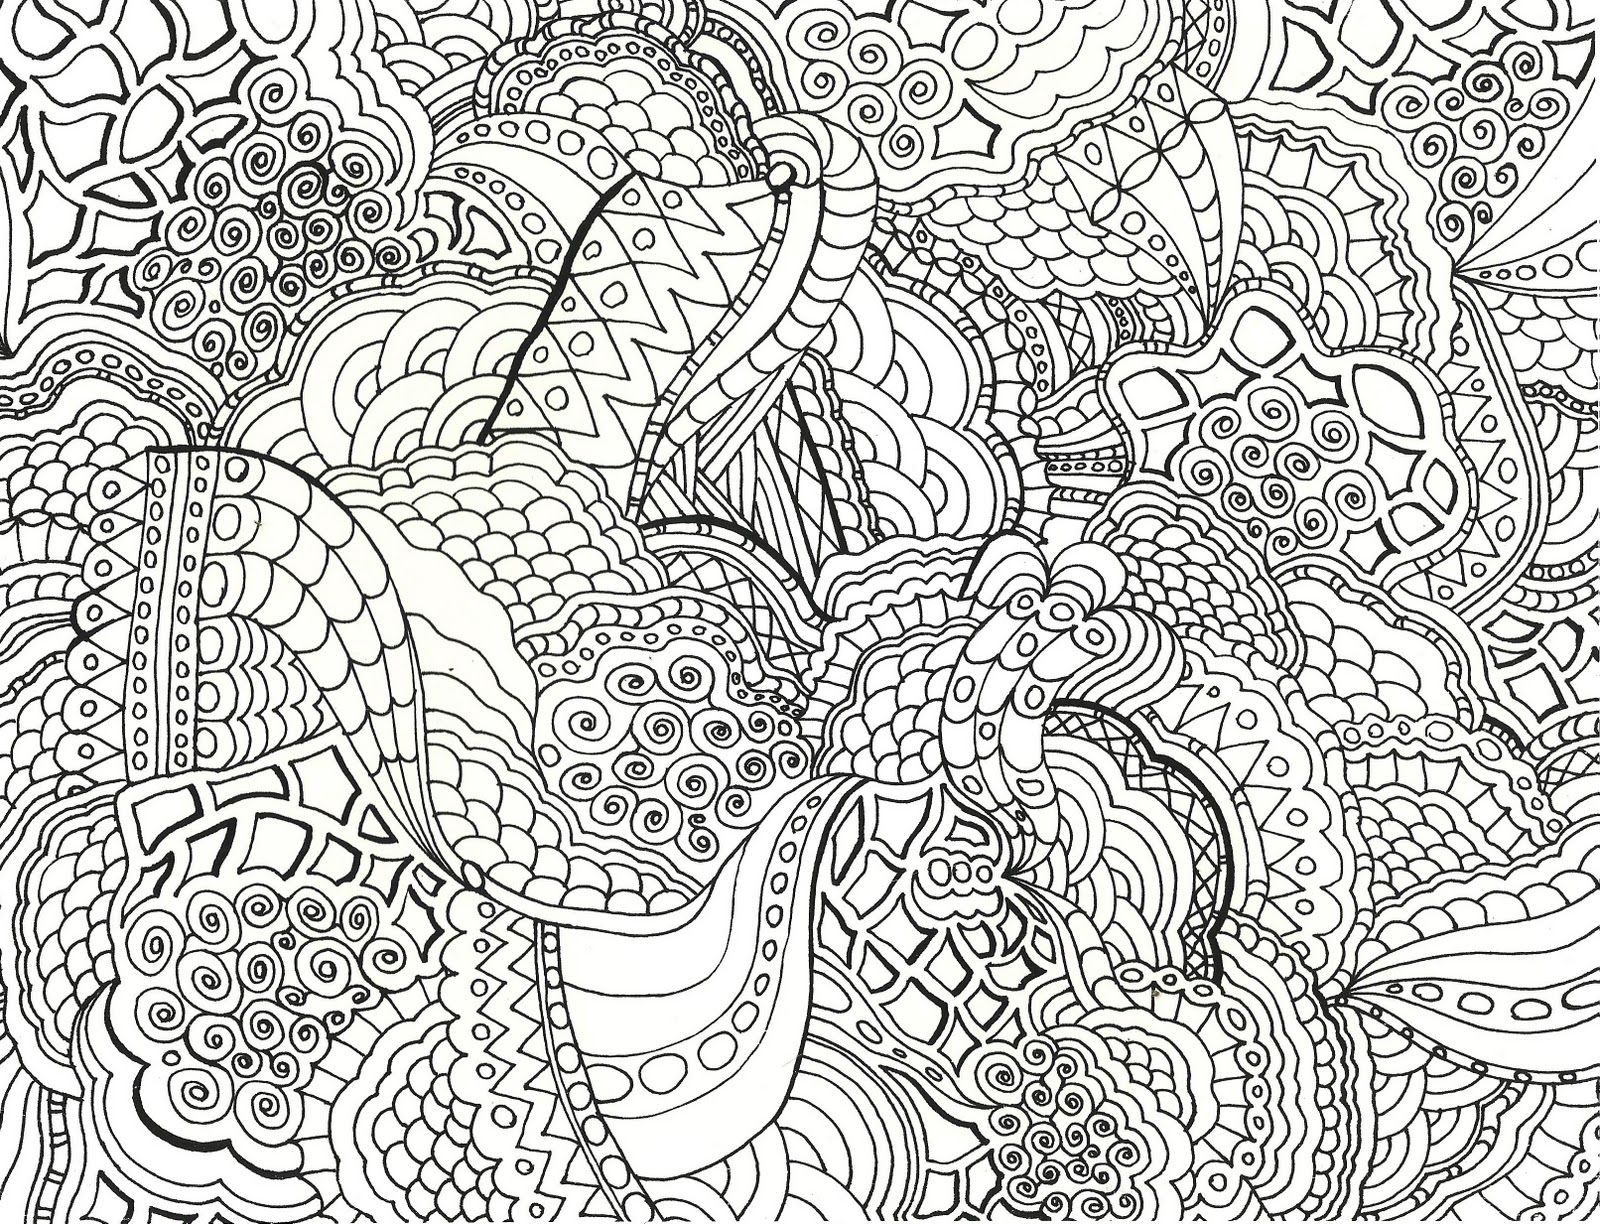 January 2011 Abstract Coloring Pages Detailed Coloring Pages Coloring Pages For Grown Ups